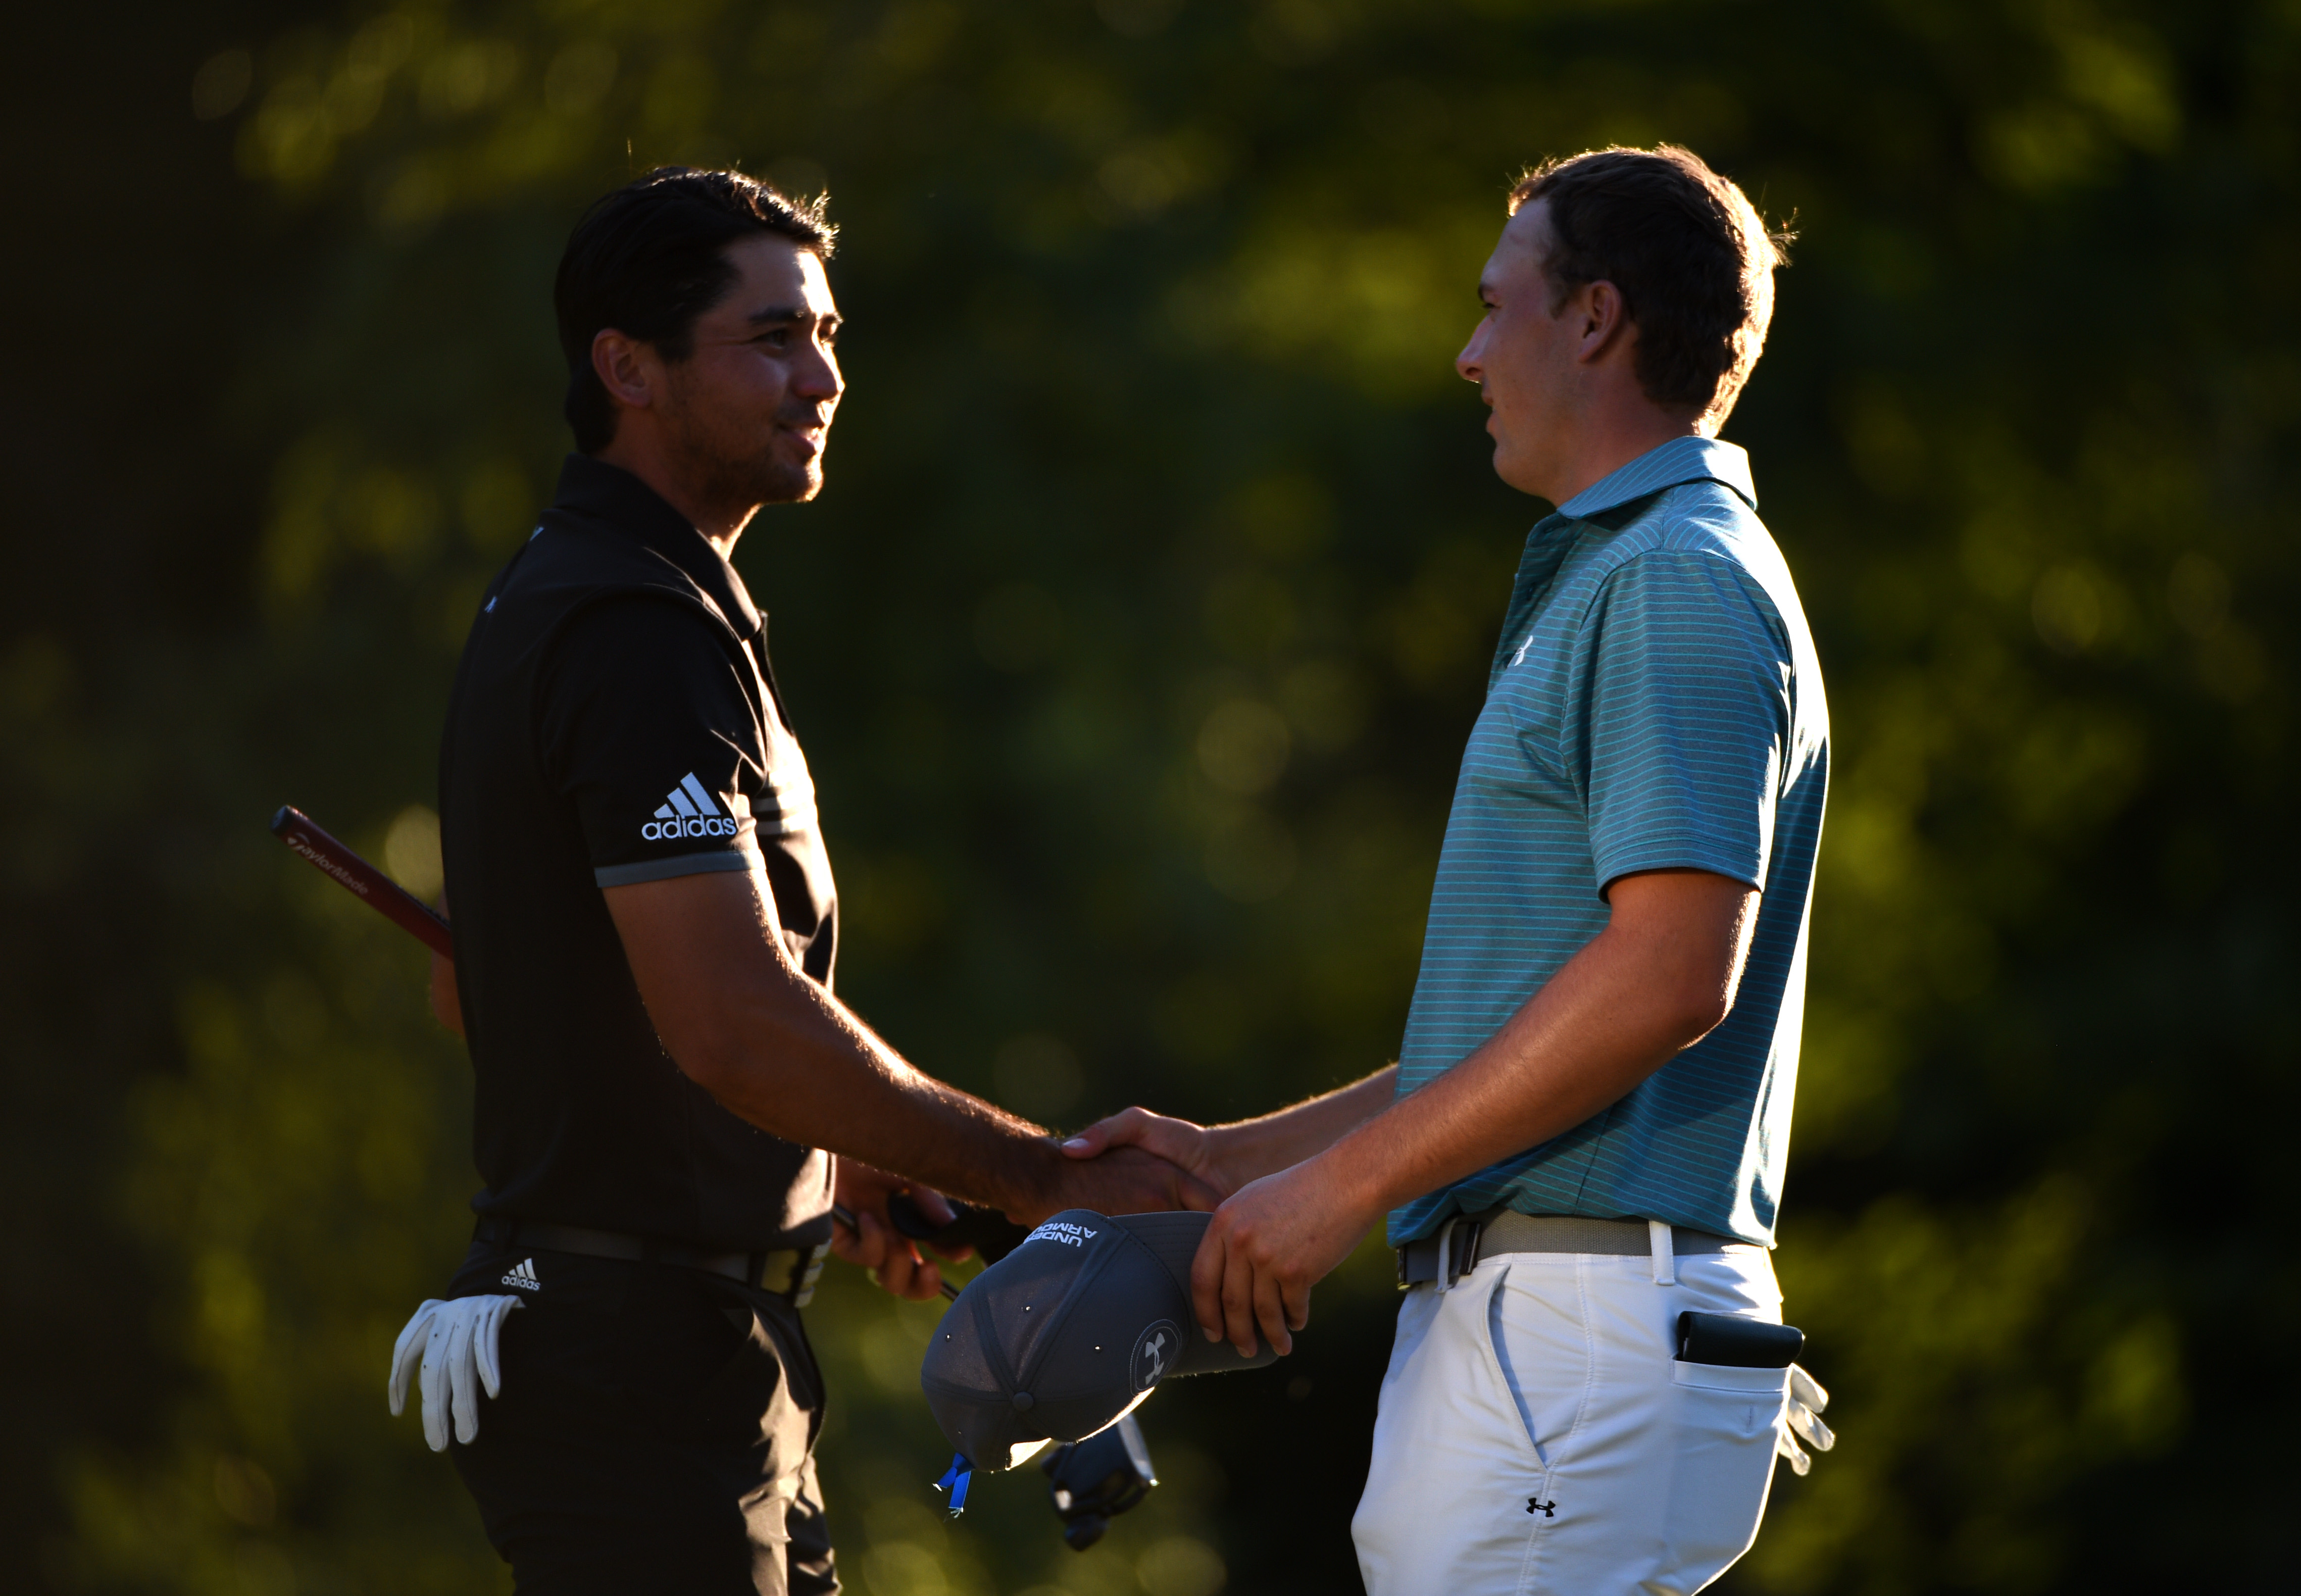 When it comes to missed cuts, golfers leave it on the line